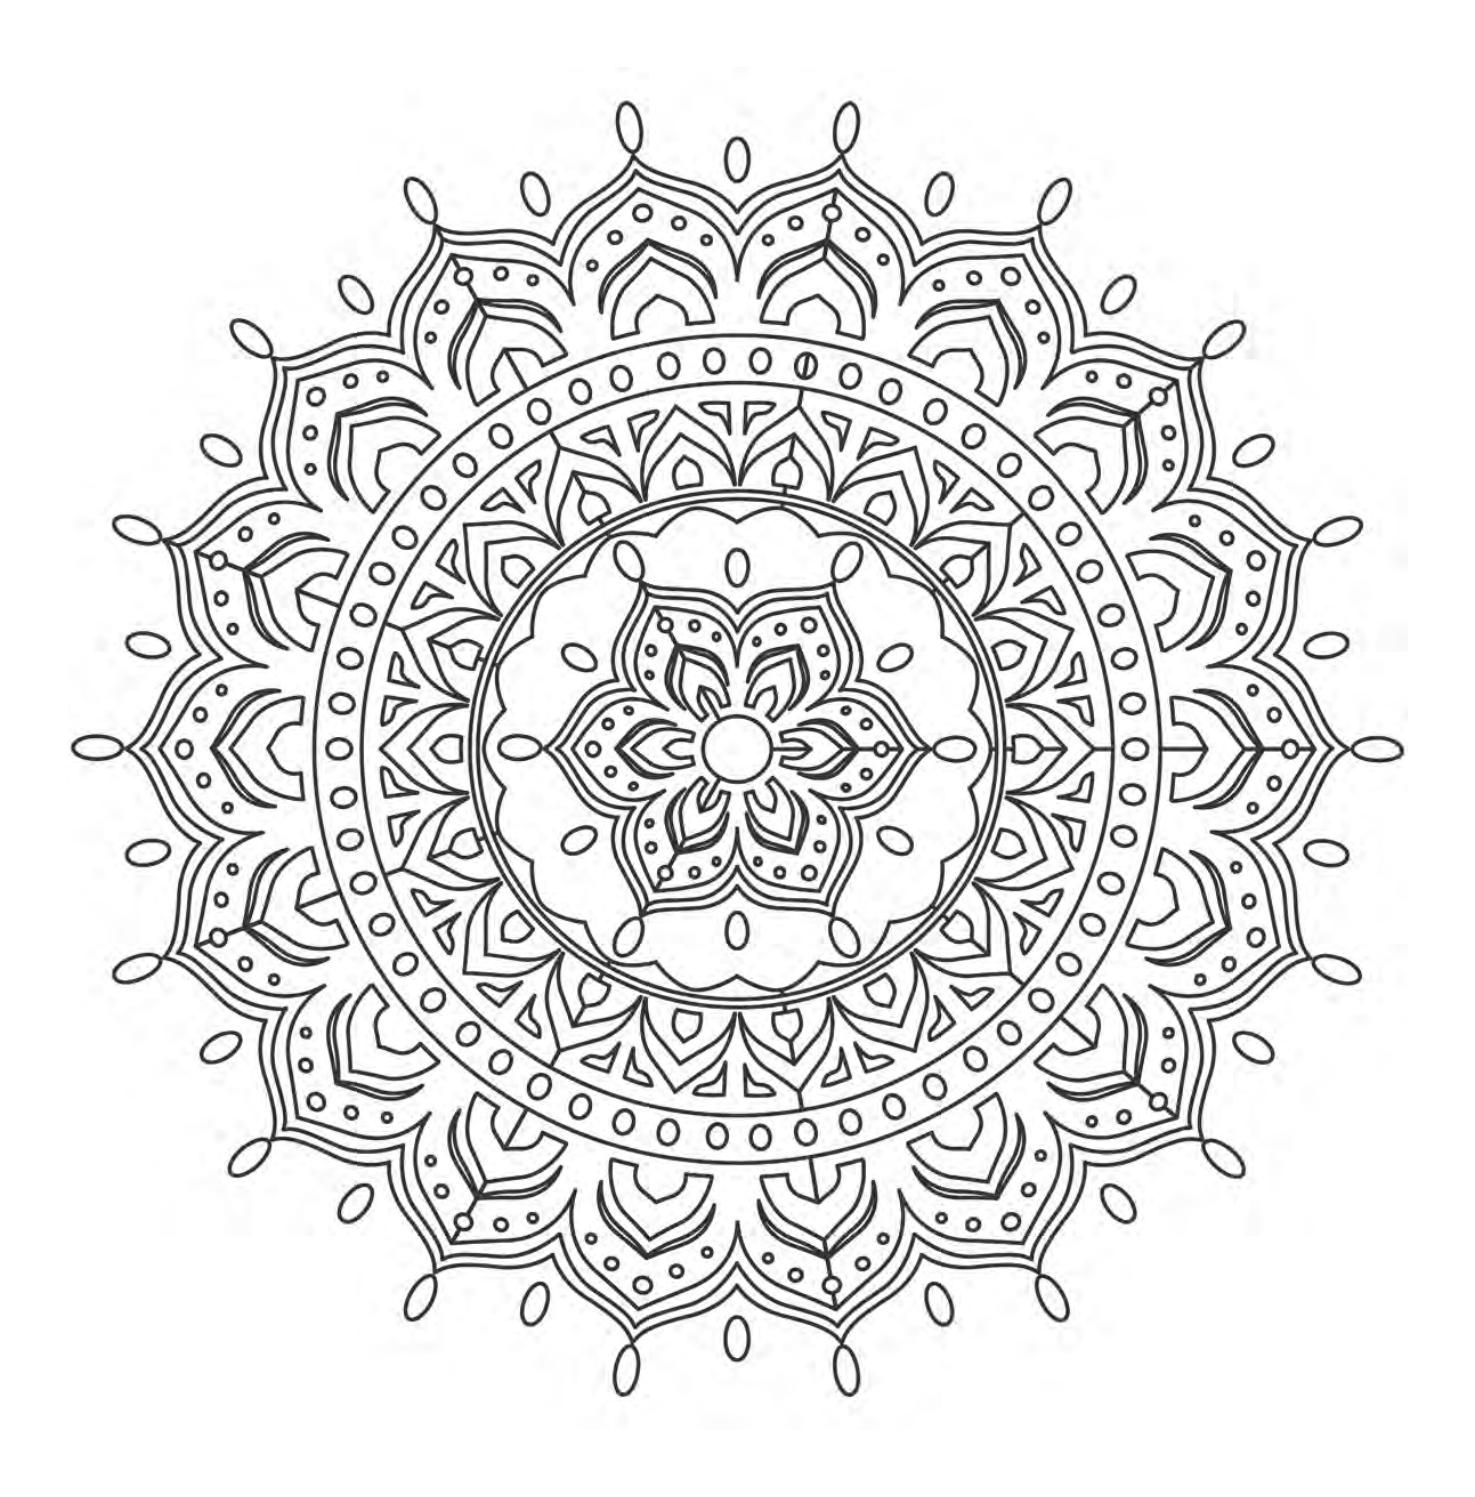 100 Beautiful Mandalas Coloring Book Mandala Coloring Pages Mandala Coloring Books Mandala Design Art